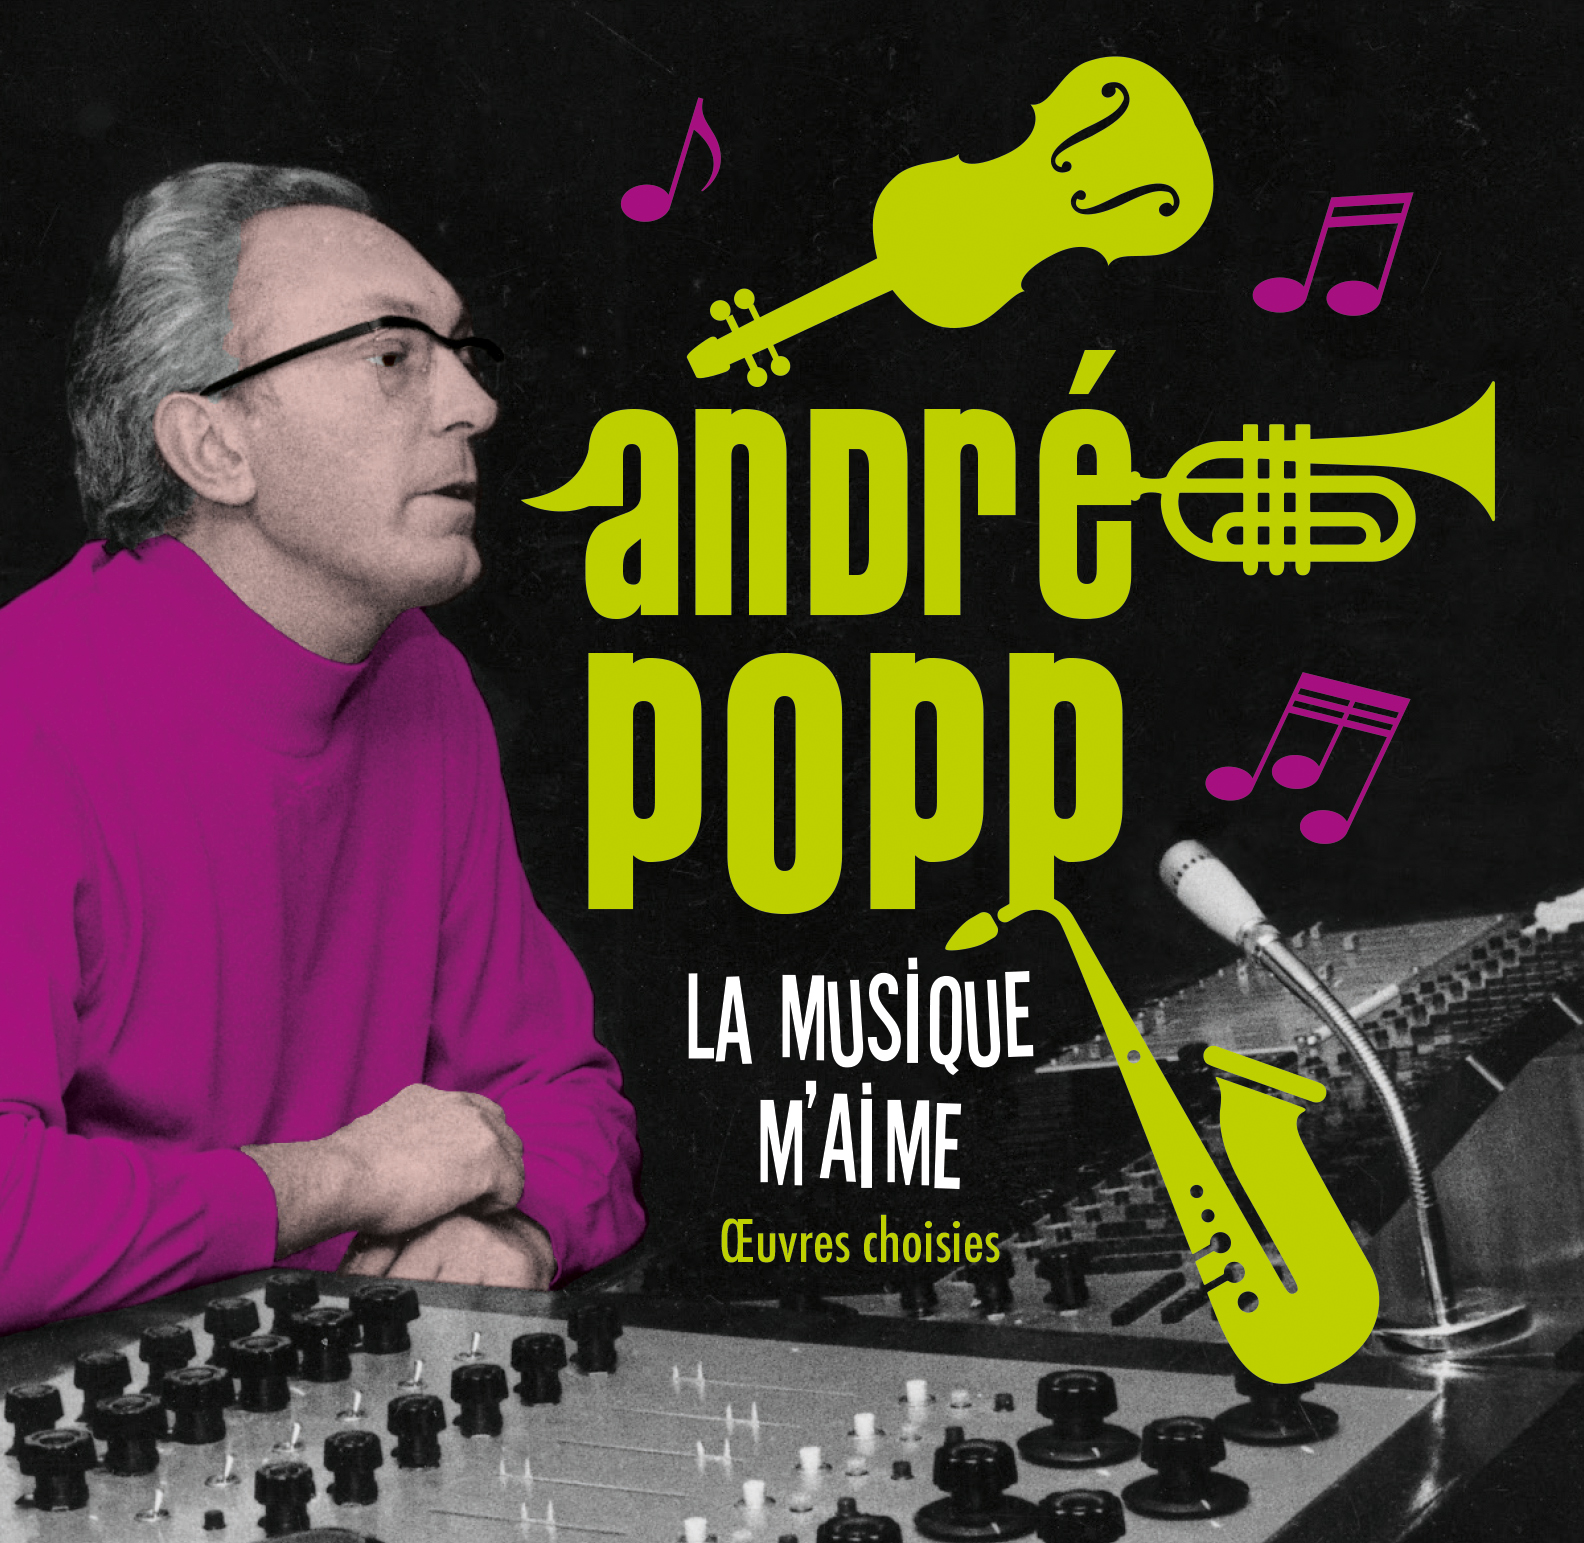 Coffret-Andre Popp.indd